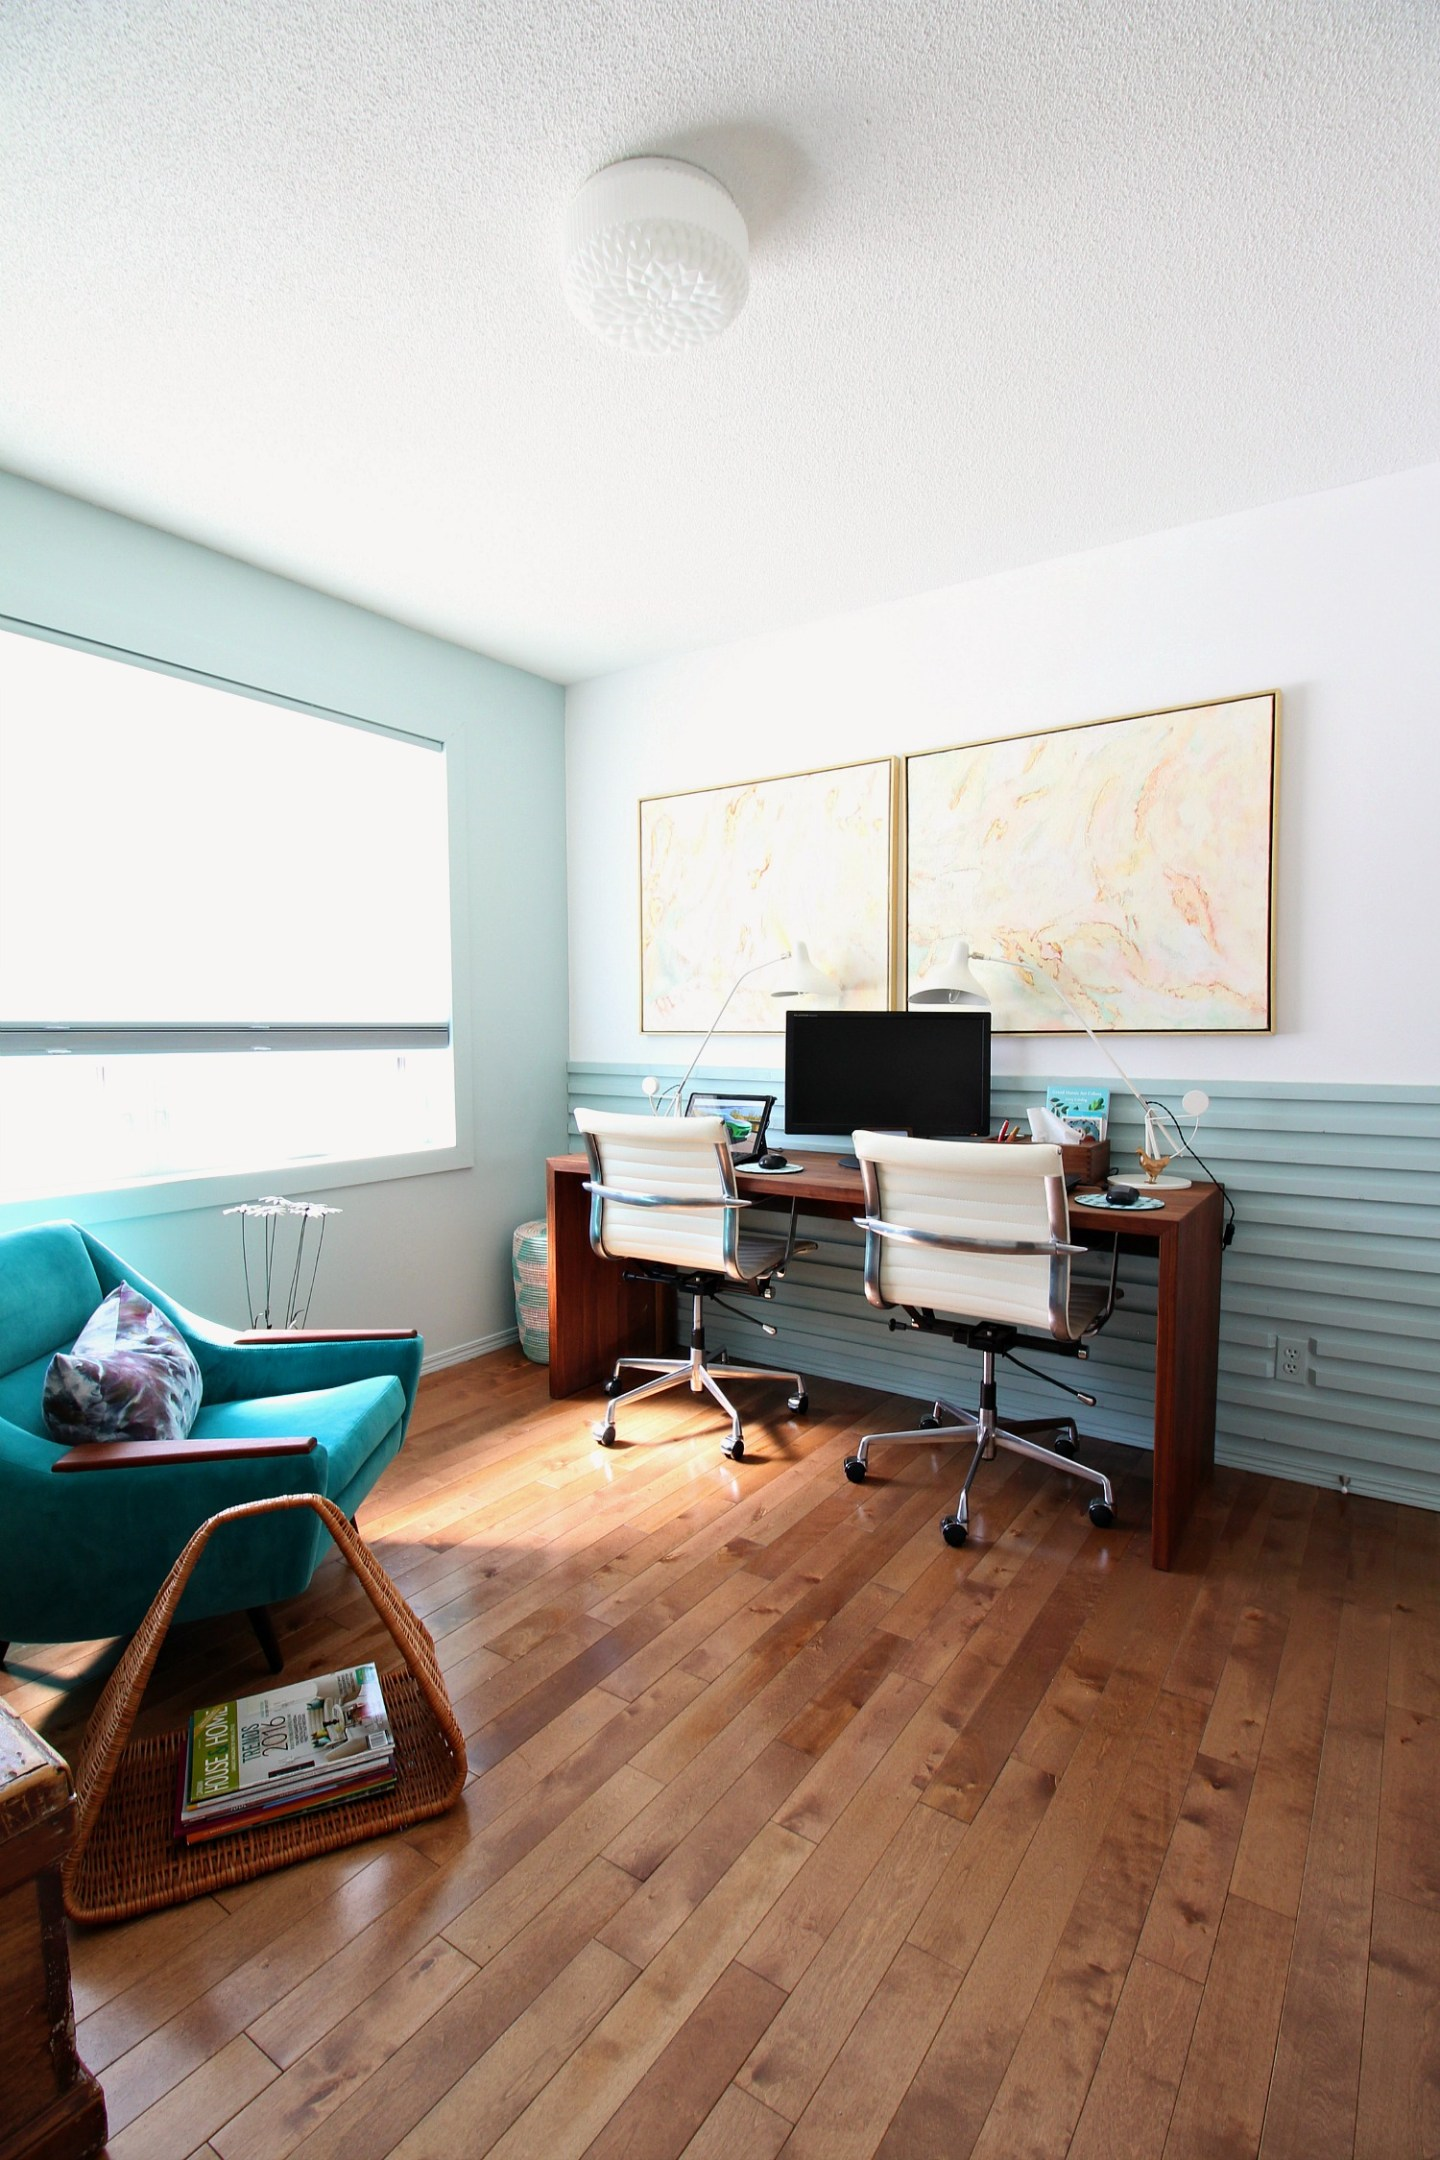 DIY Horizontal Slatted Wall in the Office